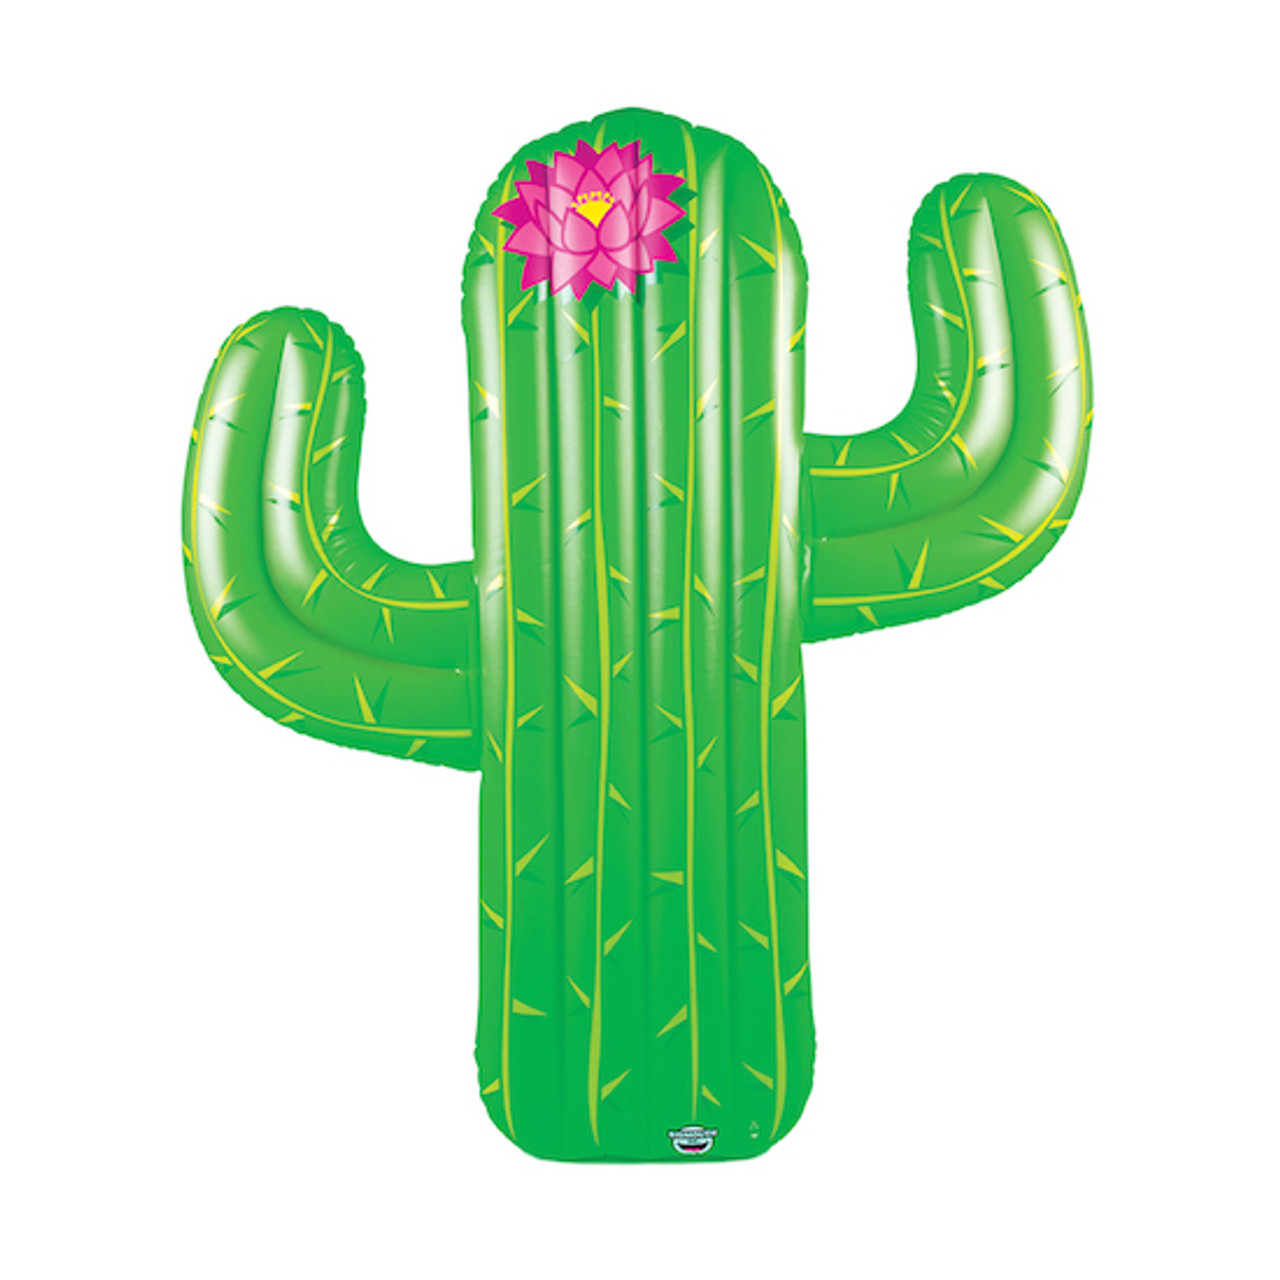 giant-gigantic-cactus-pool-party-inflatable-supplies-nightclub-shop-float-outdoors-2